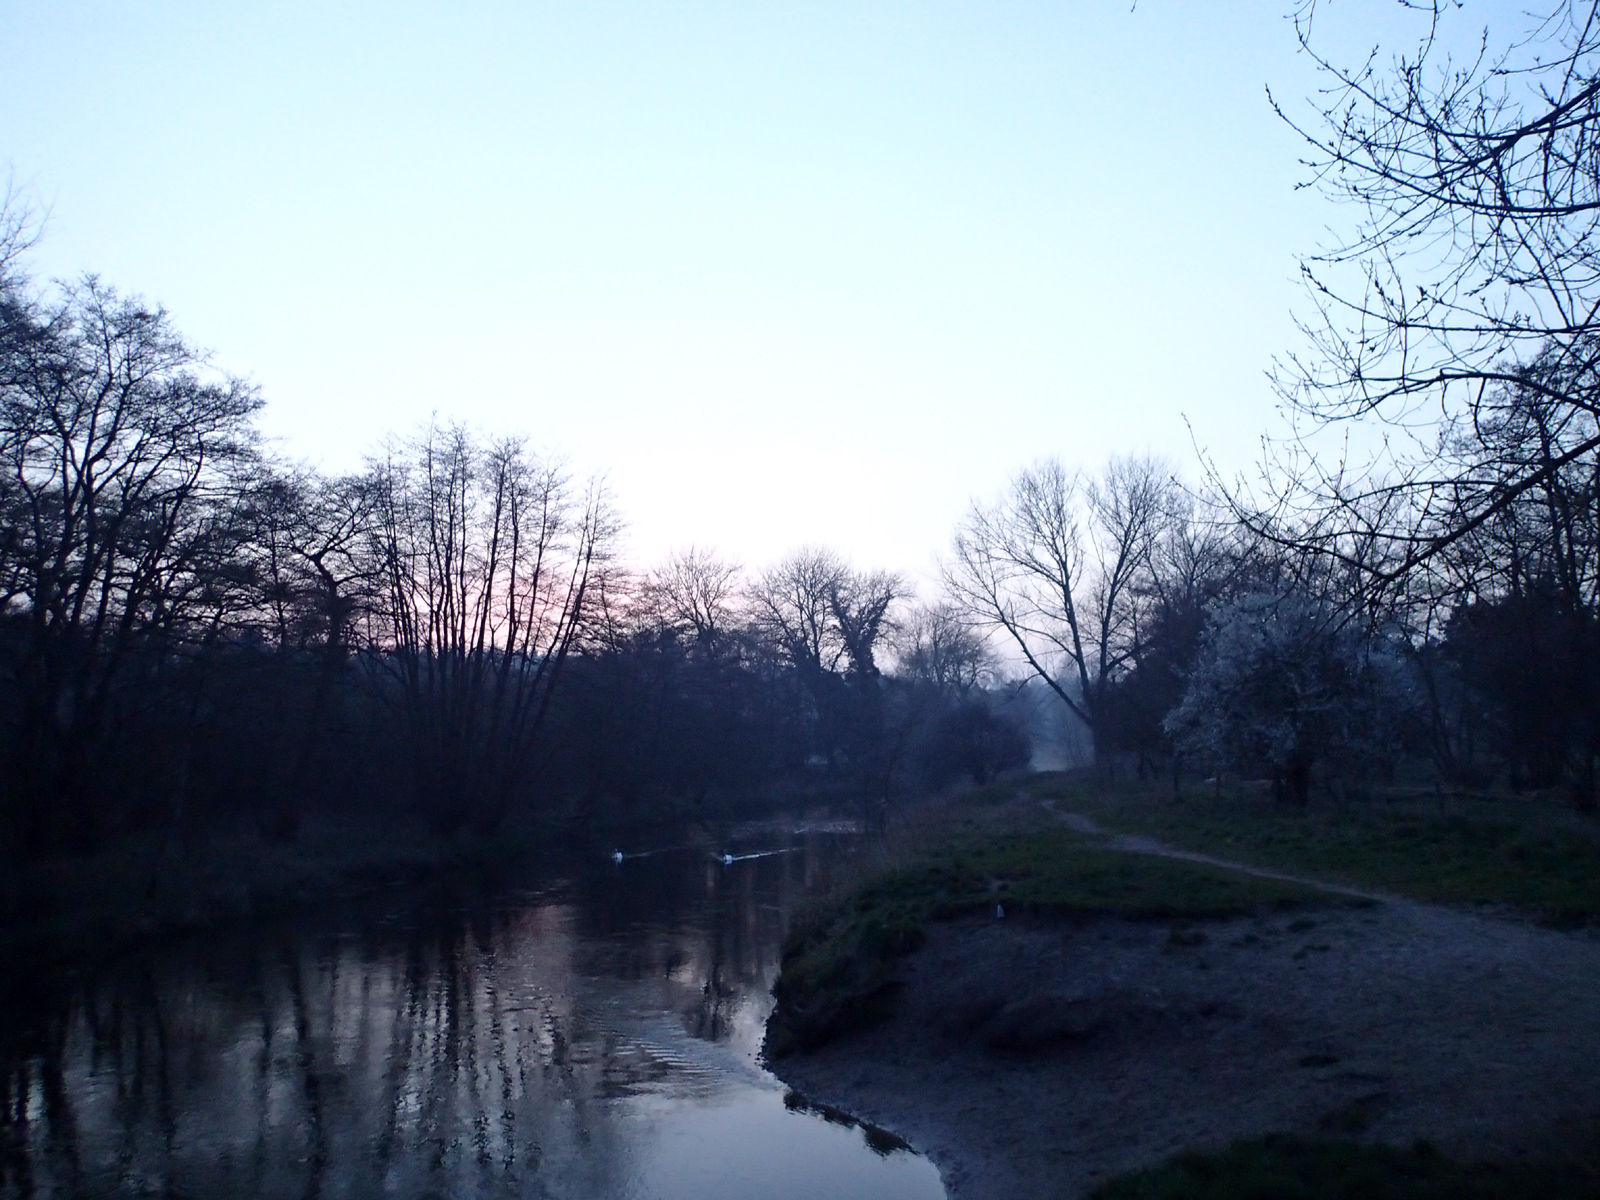 river at sunset with mist and trees